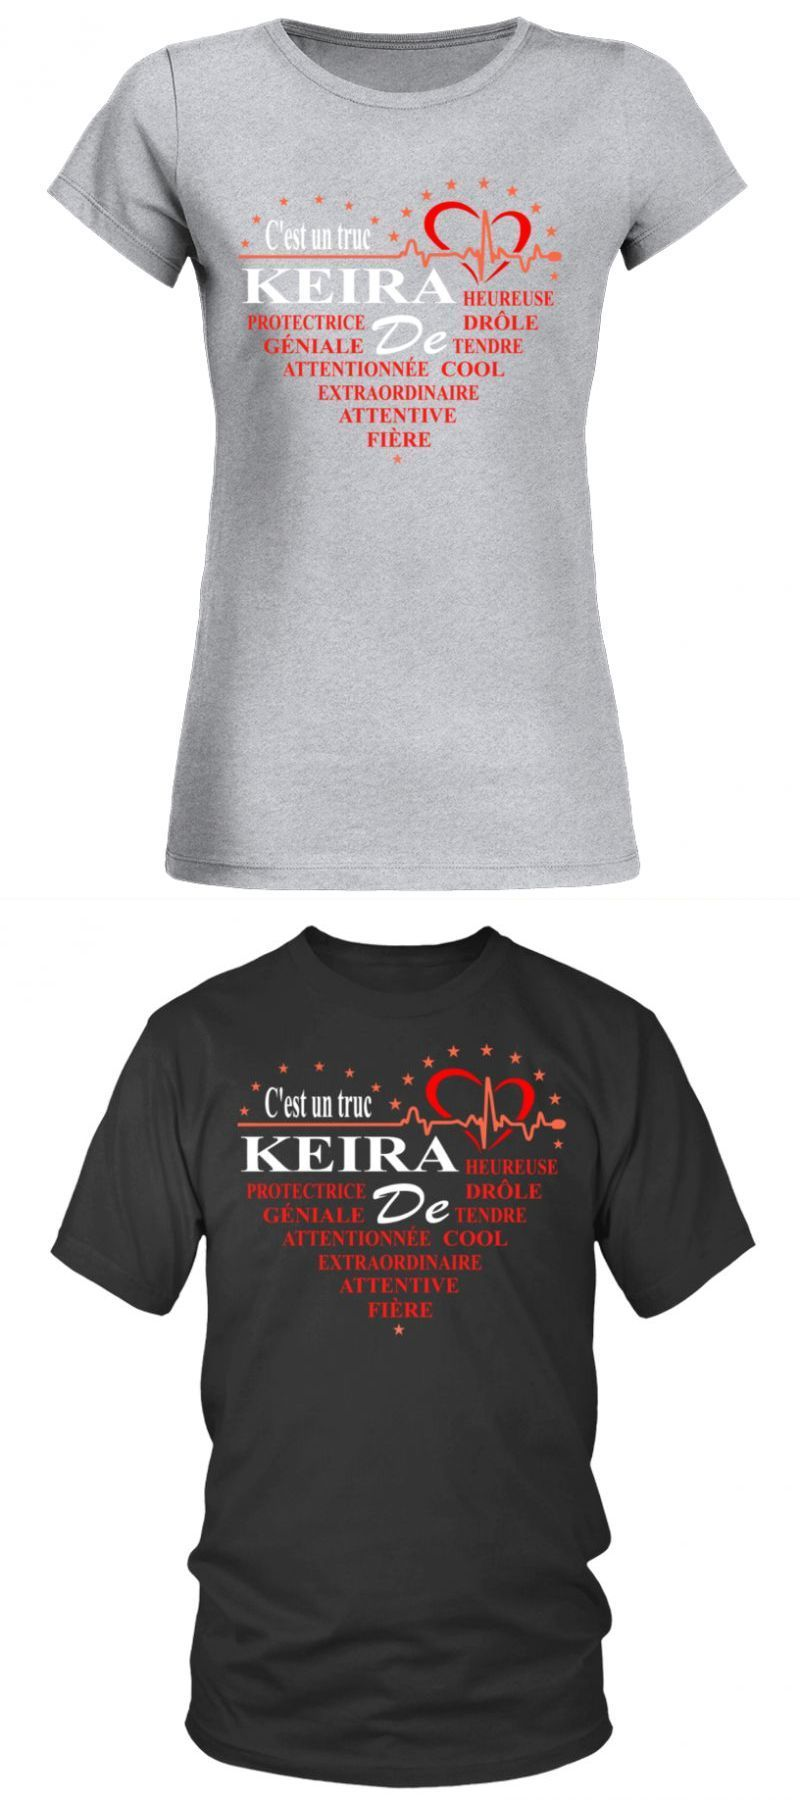 High Quality T Shirt Printing With Keira Cest Un Truc De Keira Order